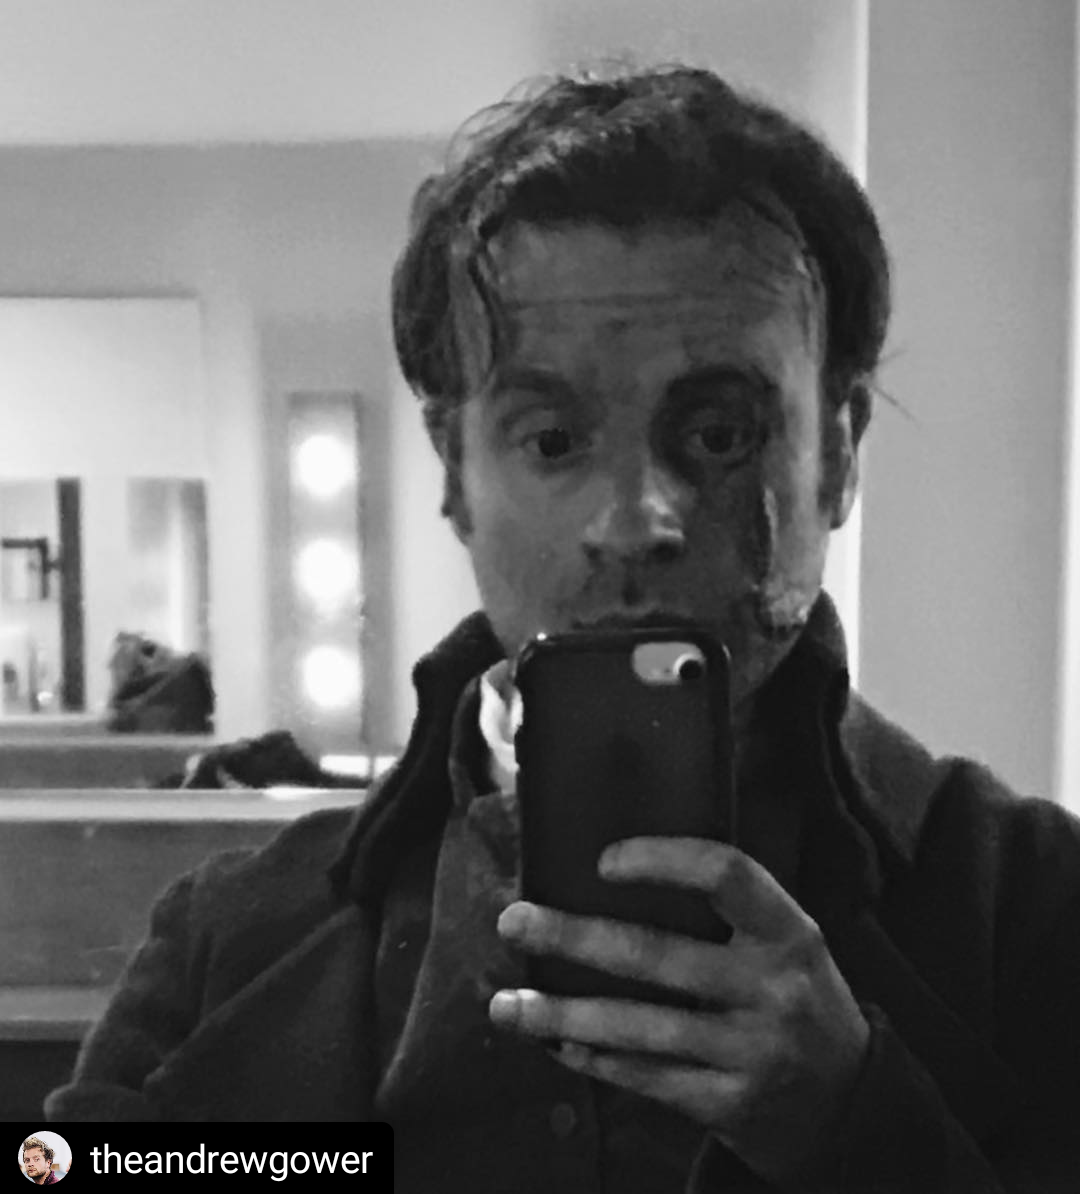 theandrewgower_20190117223750.png